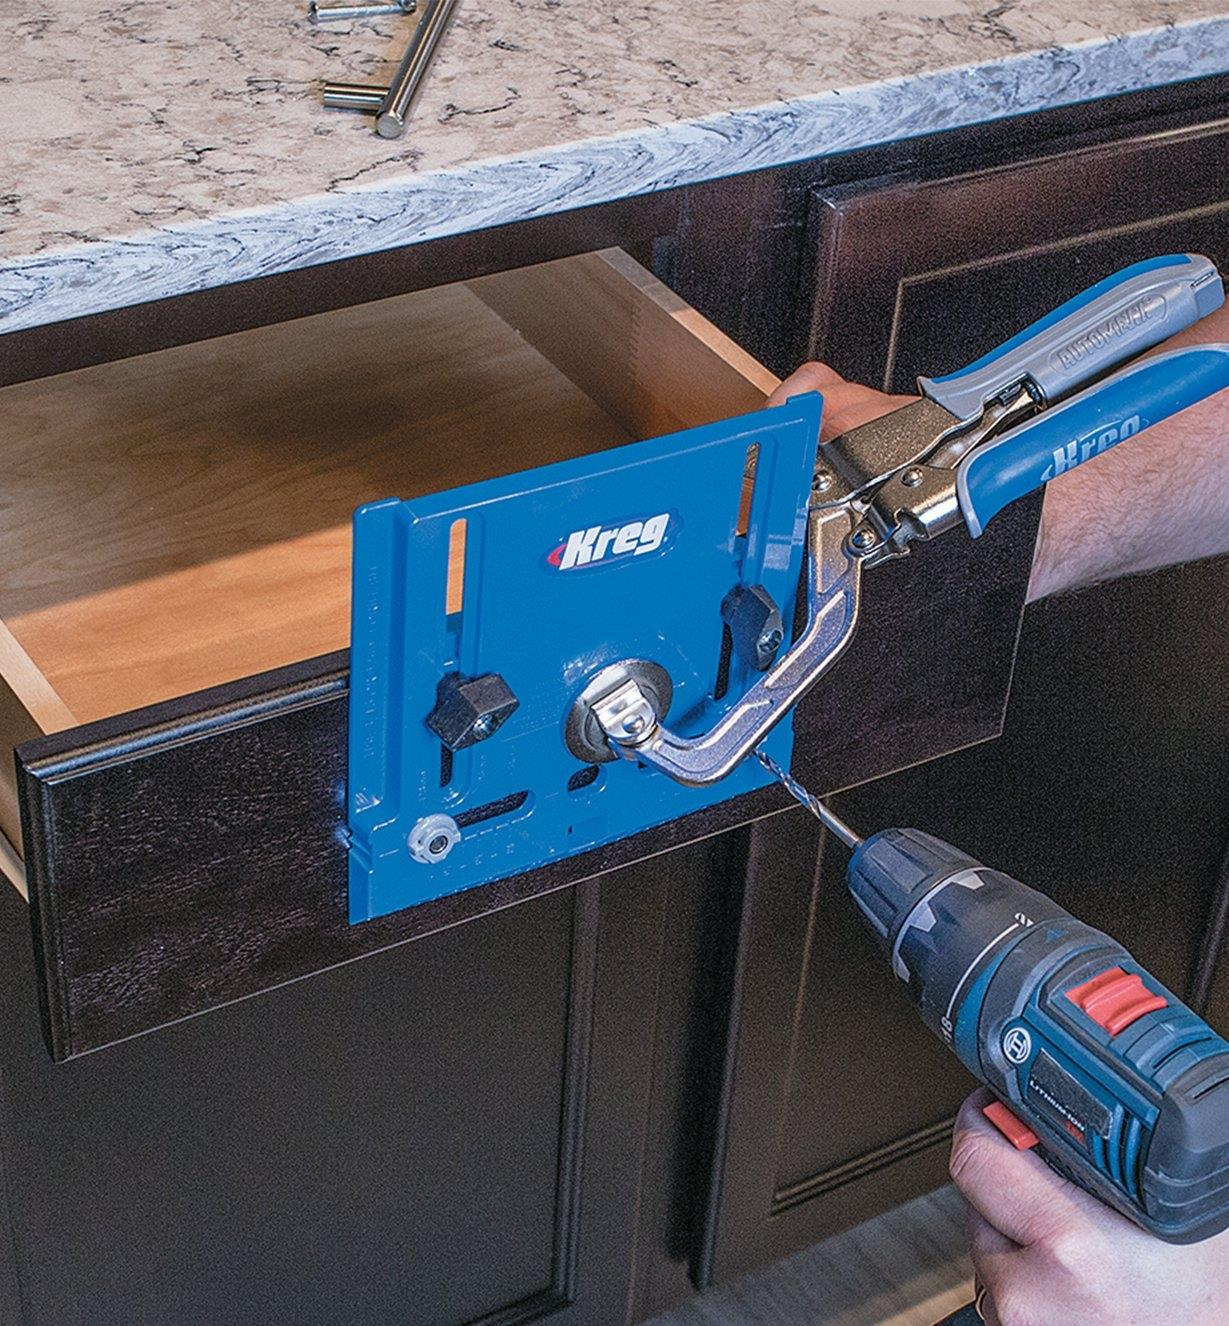 Kreg Hardware Jig used with clamp to drill hole for drawer pull